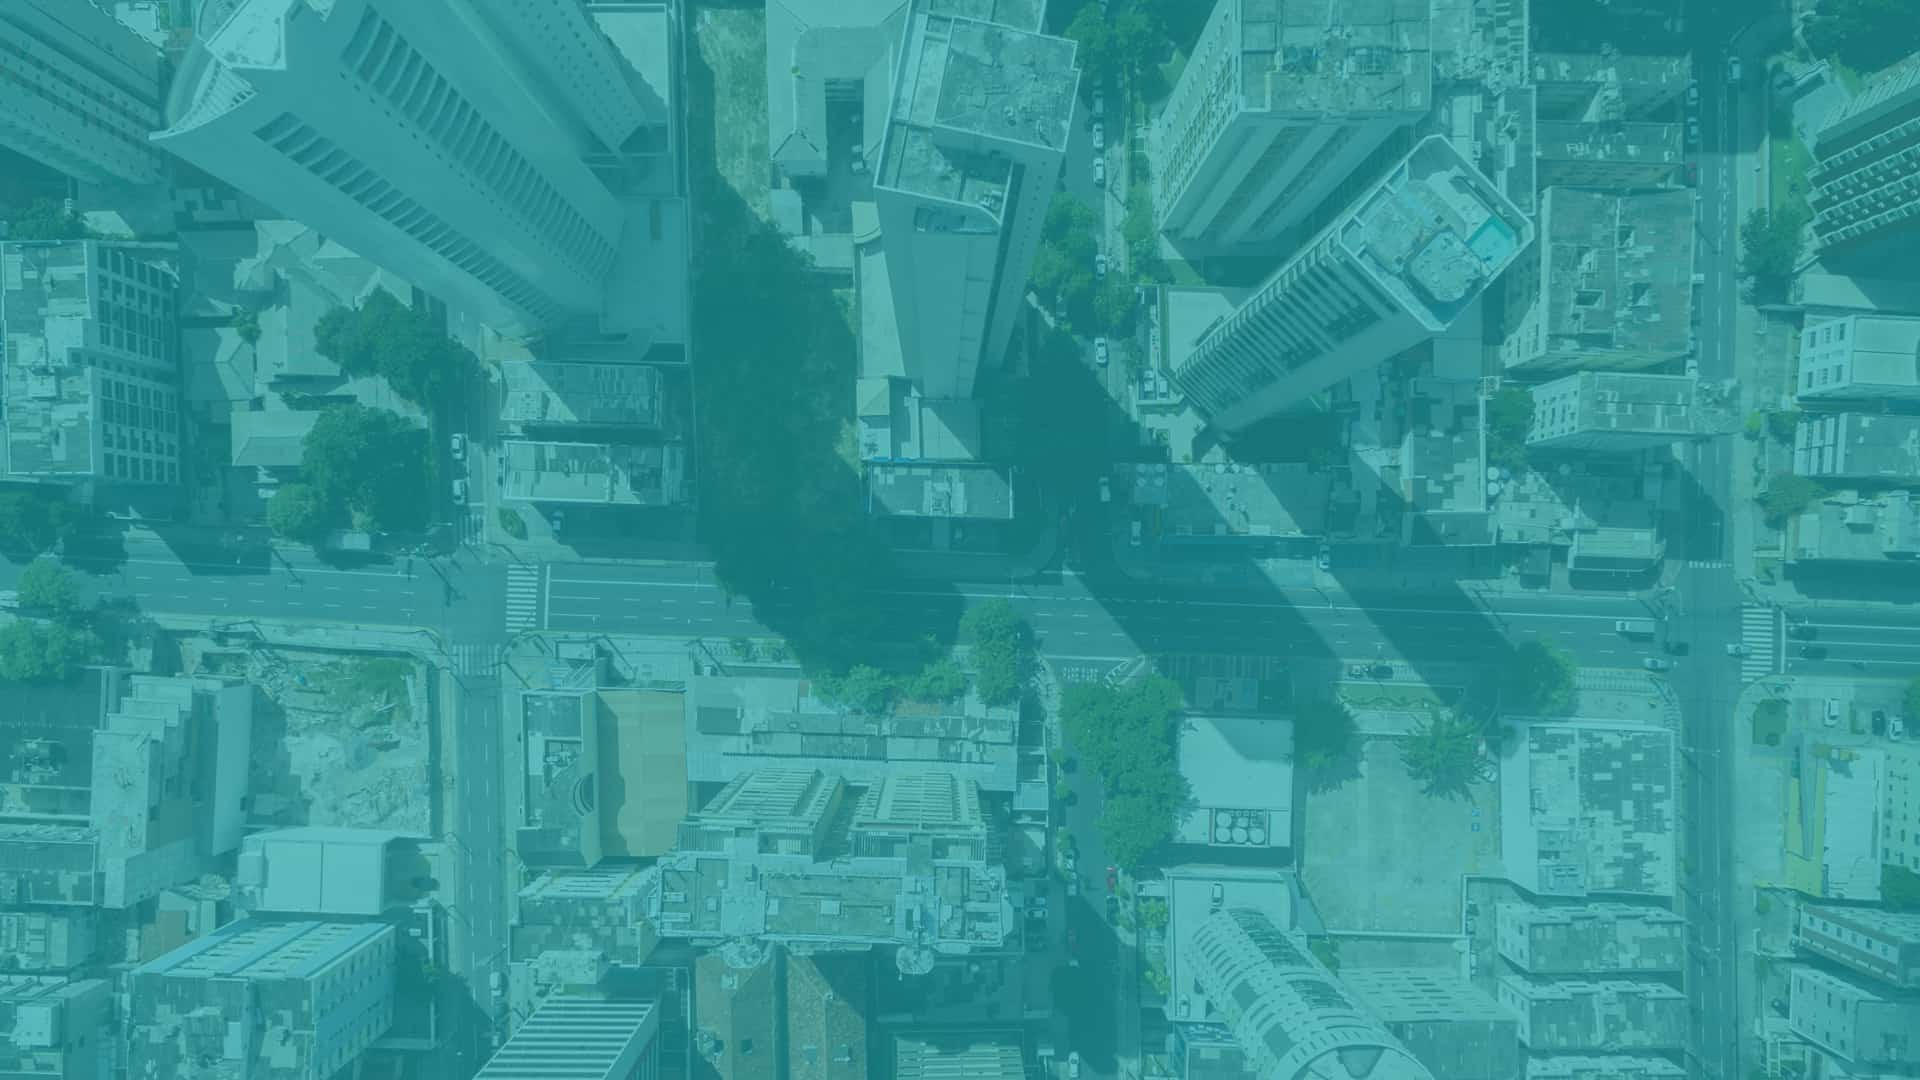 Aerial view of city street taken from a drone